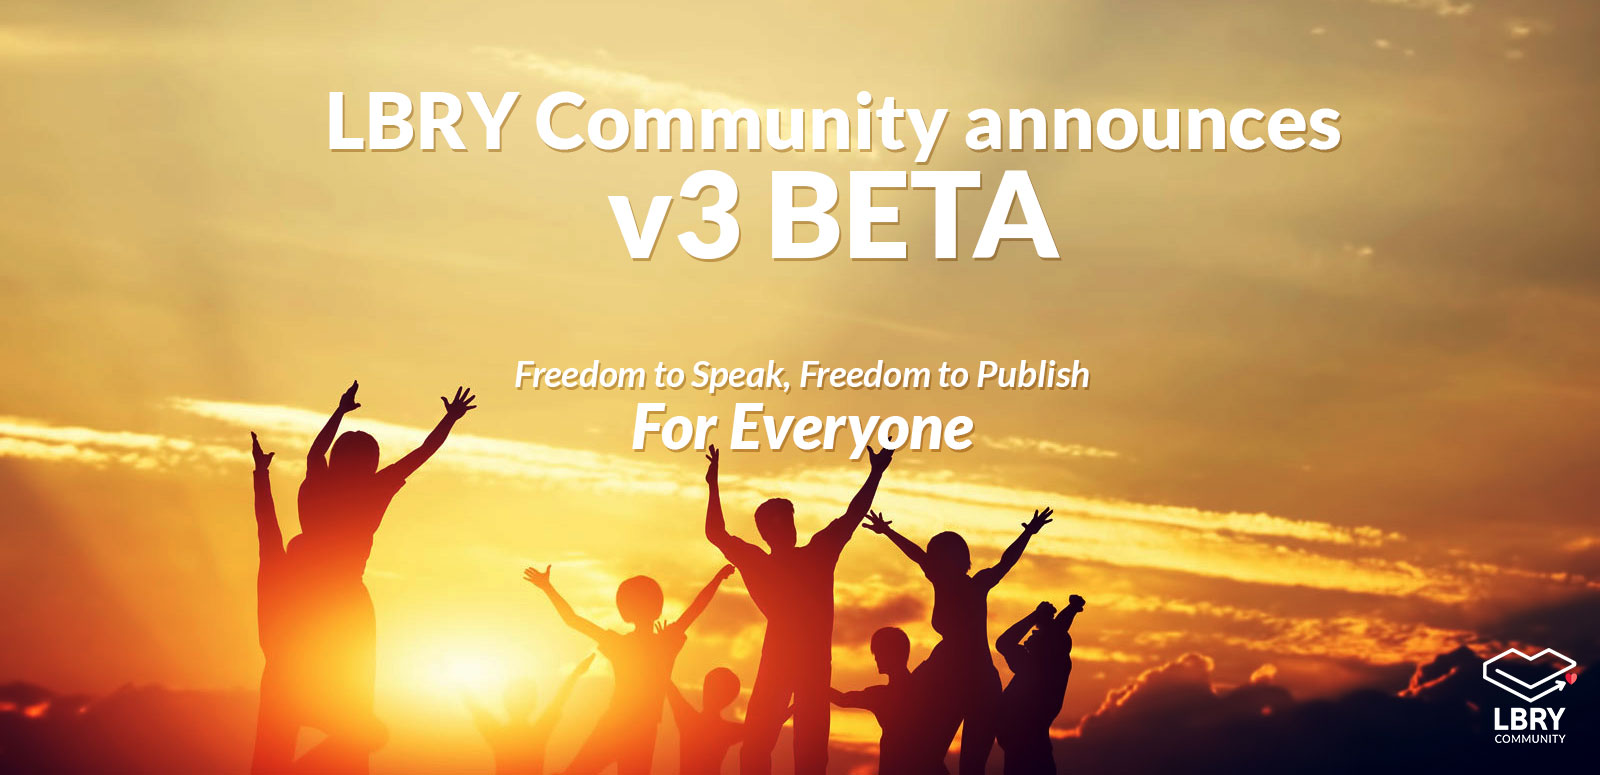 LBRY Community announces v3 BETA